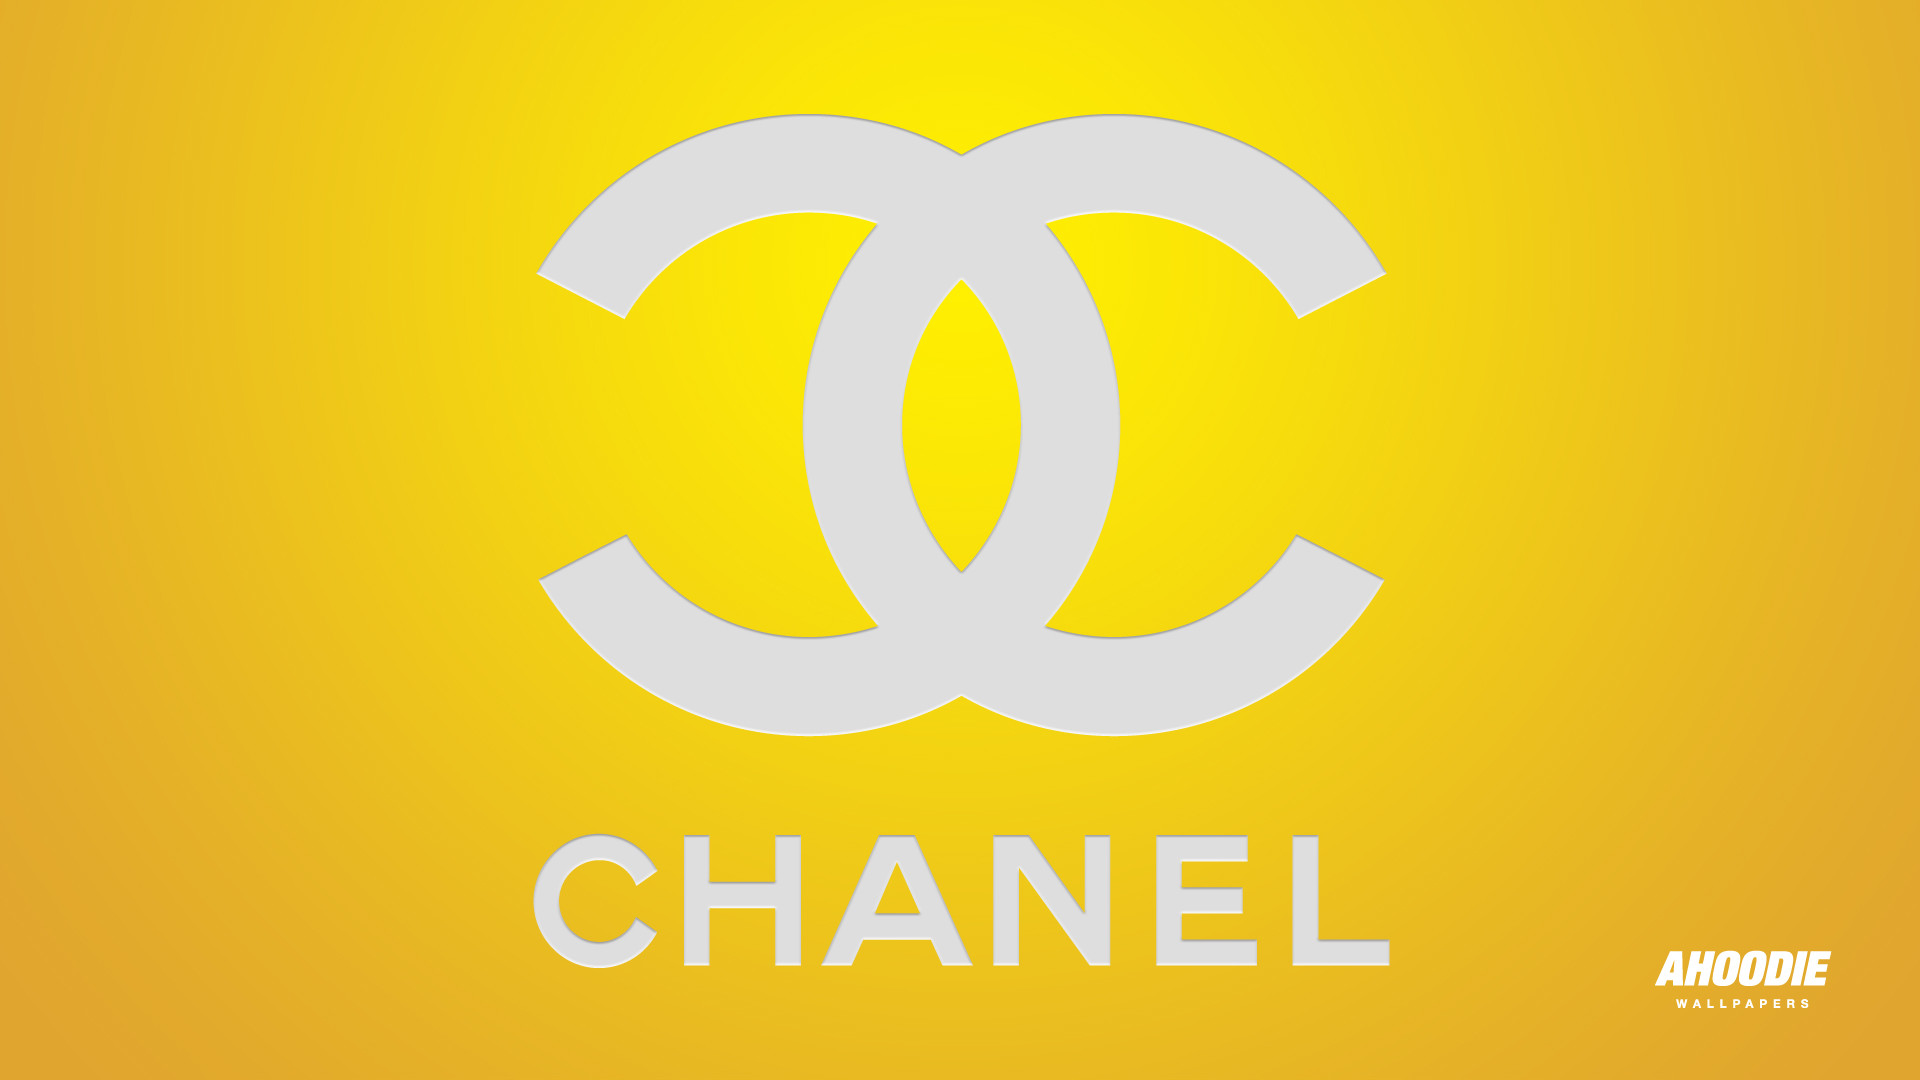 Chanel Wallpaper For Iphone 5 Pink Chanel Wallpaper 54 Images